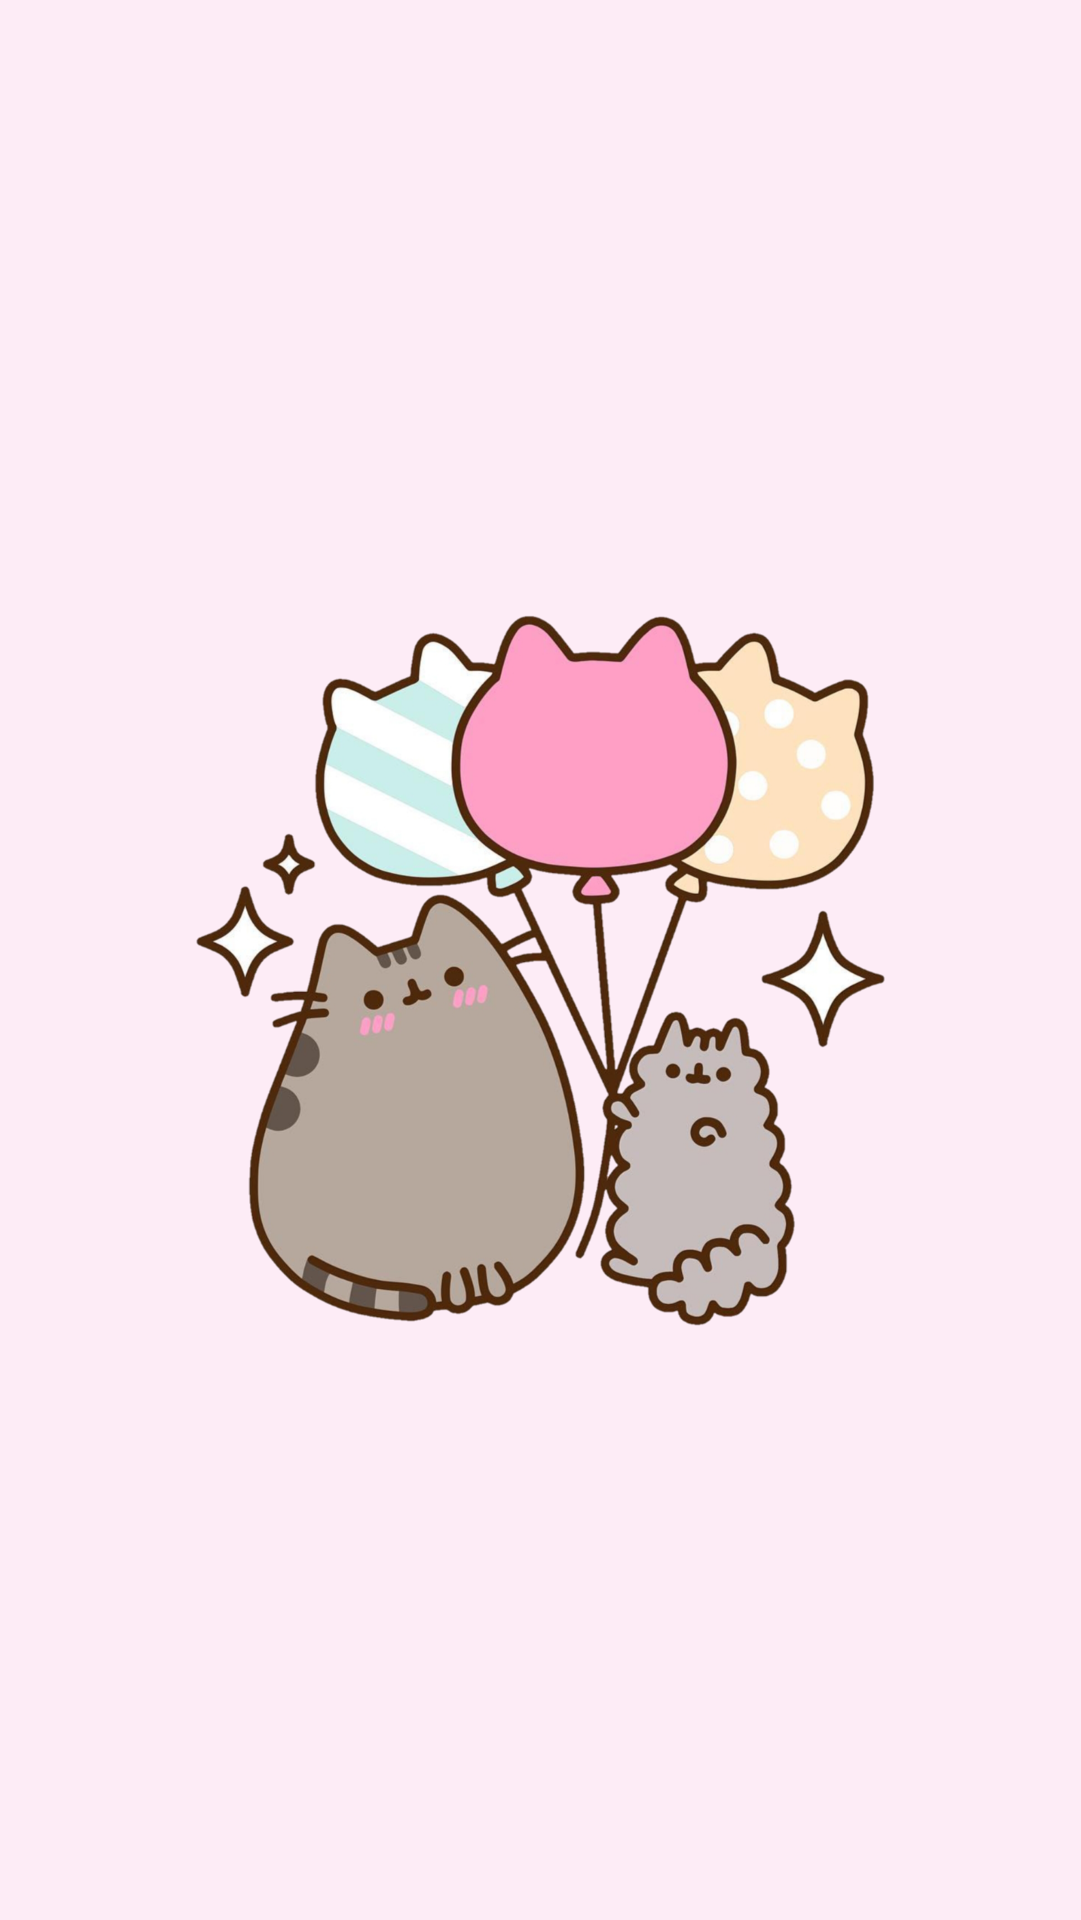 Lil Princess Pusheen Stormy Lockscreens Requested By Pusheen Cute Cute Cartoon Wallpapers Pusheen Cat